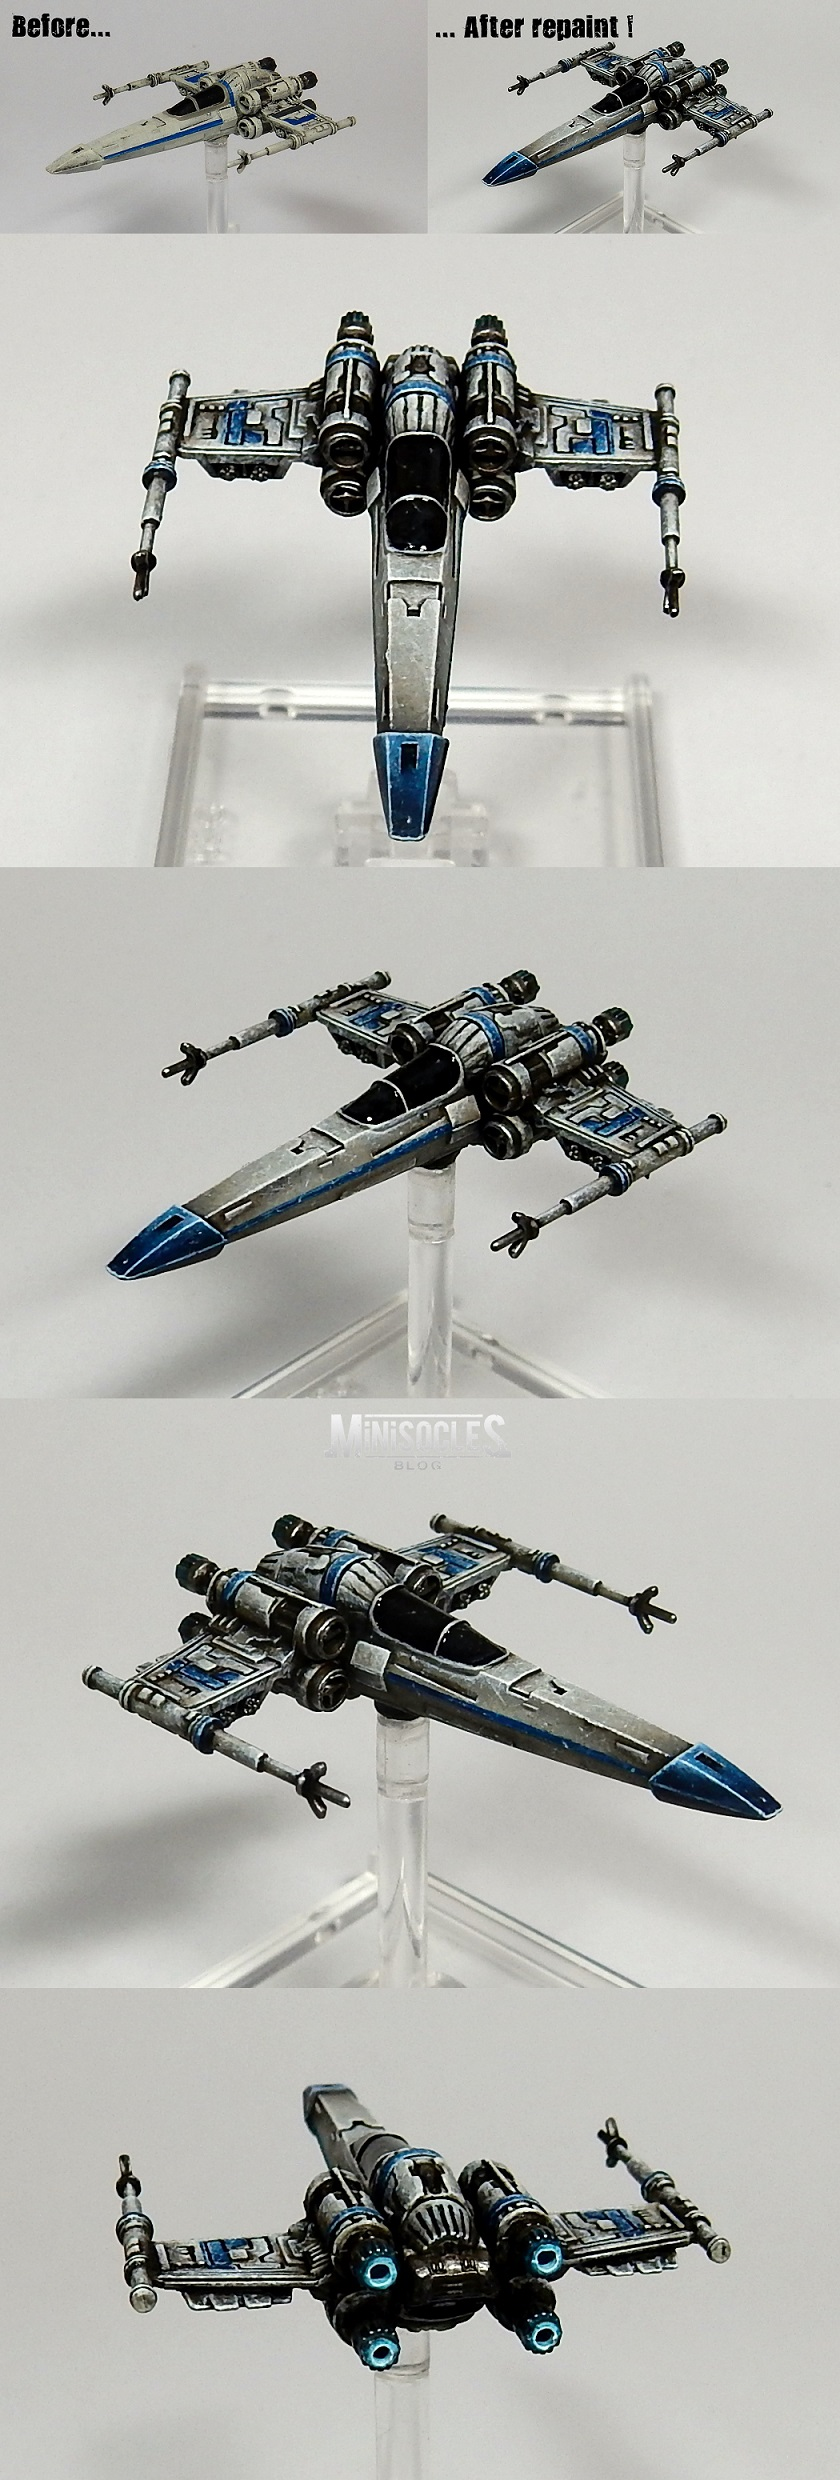 Repaint of a Z95 Headhunter for X-Wing